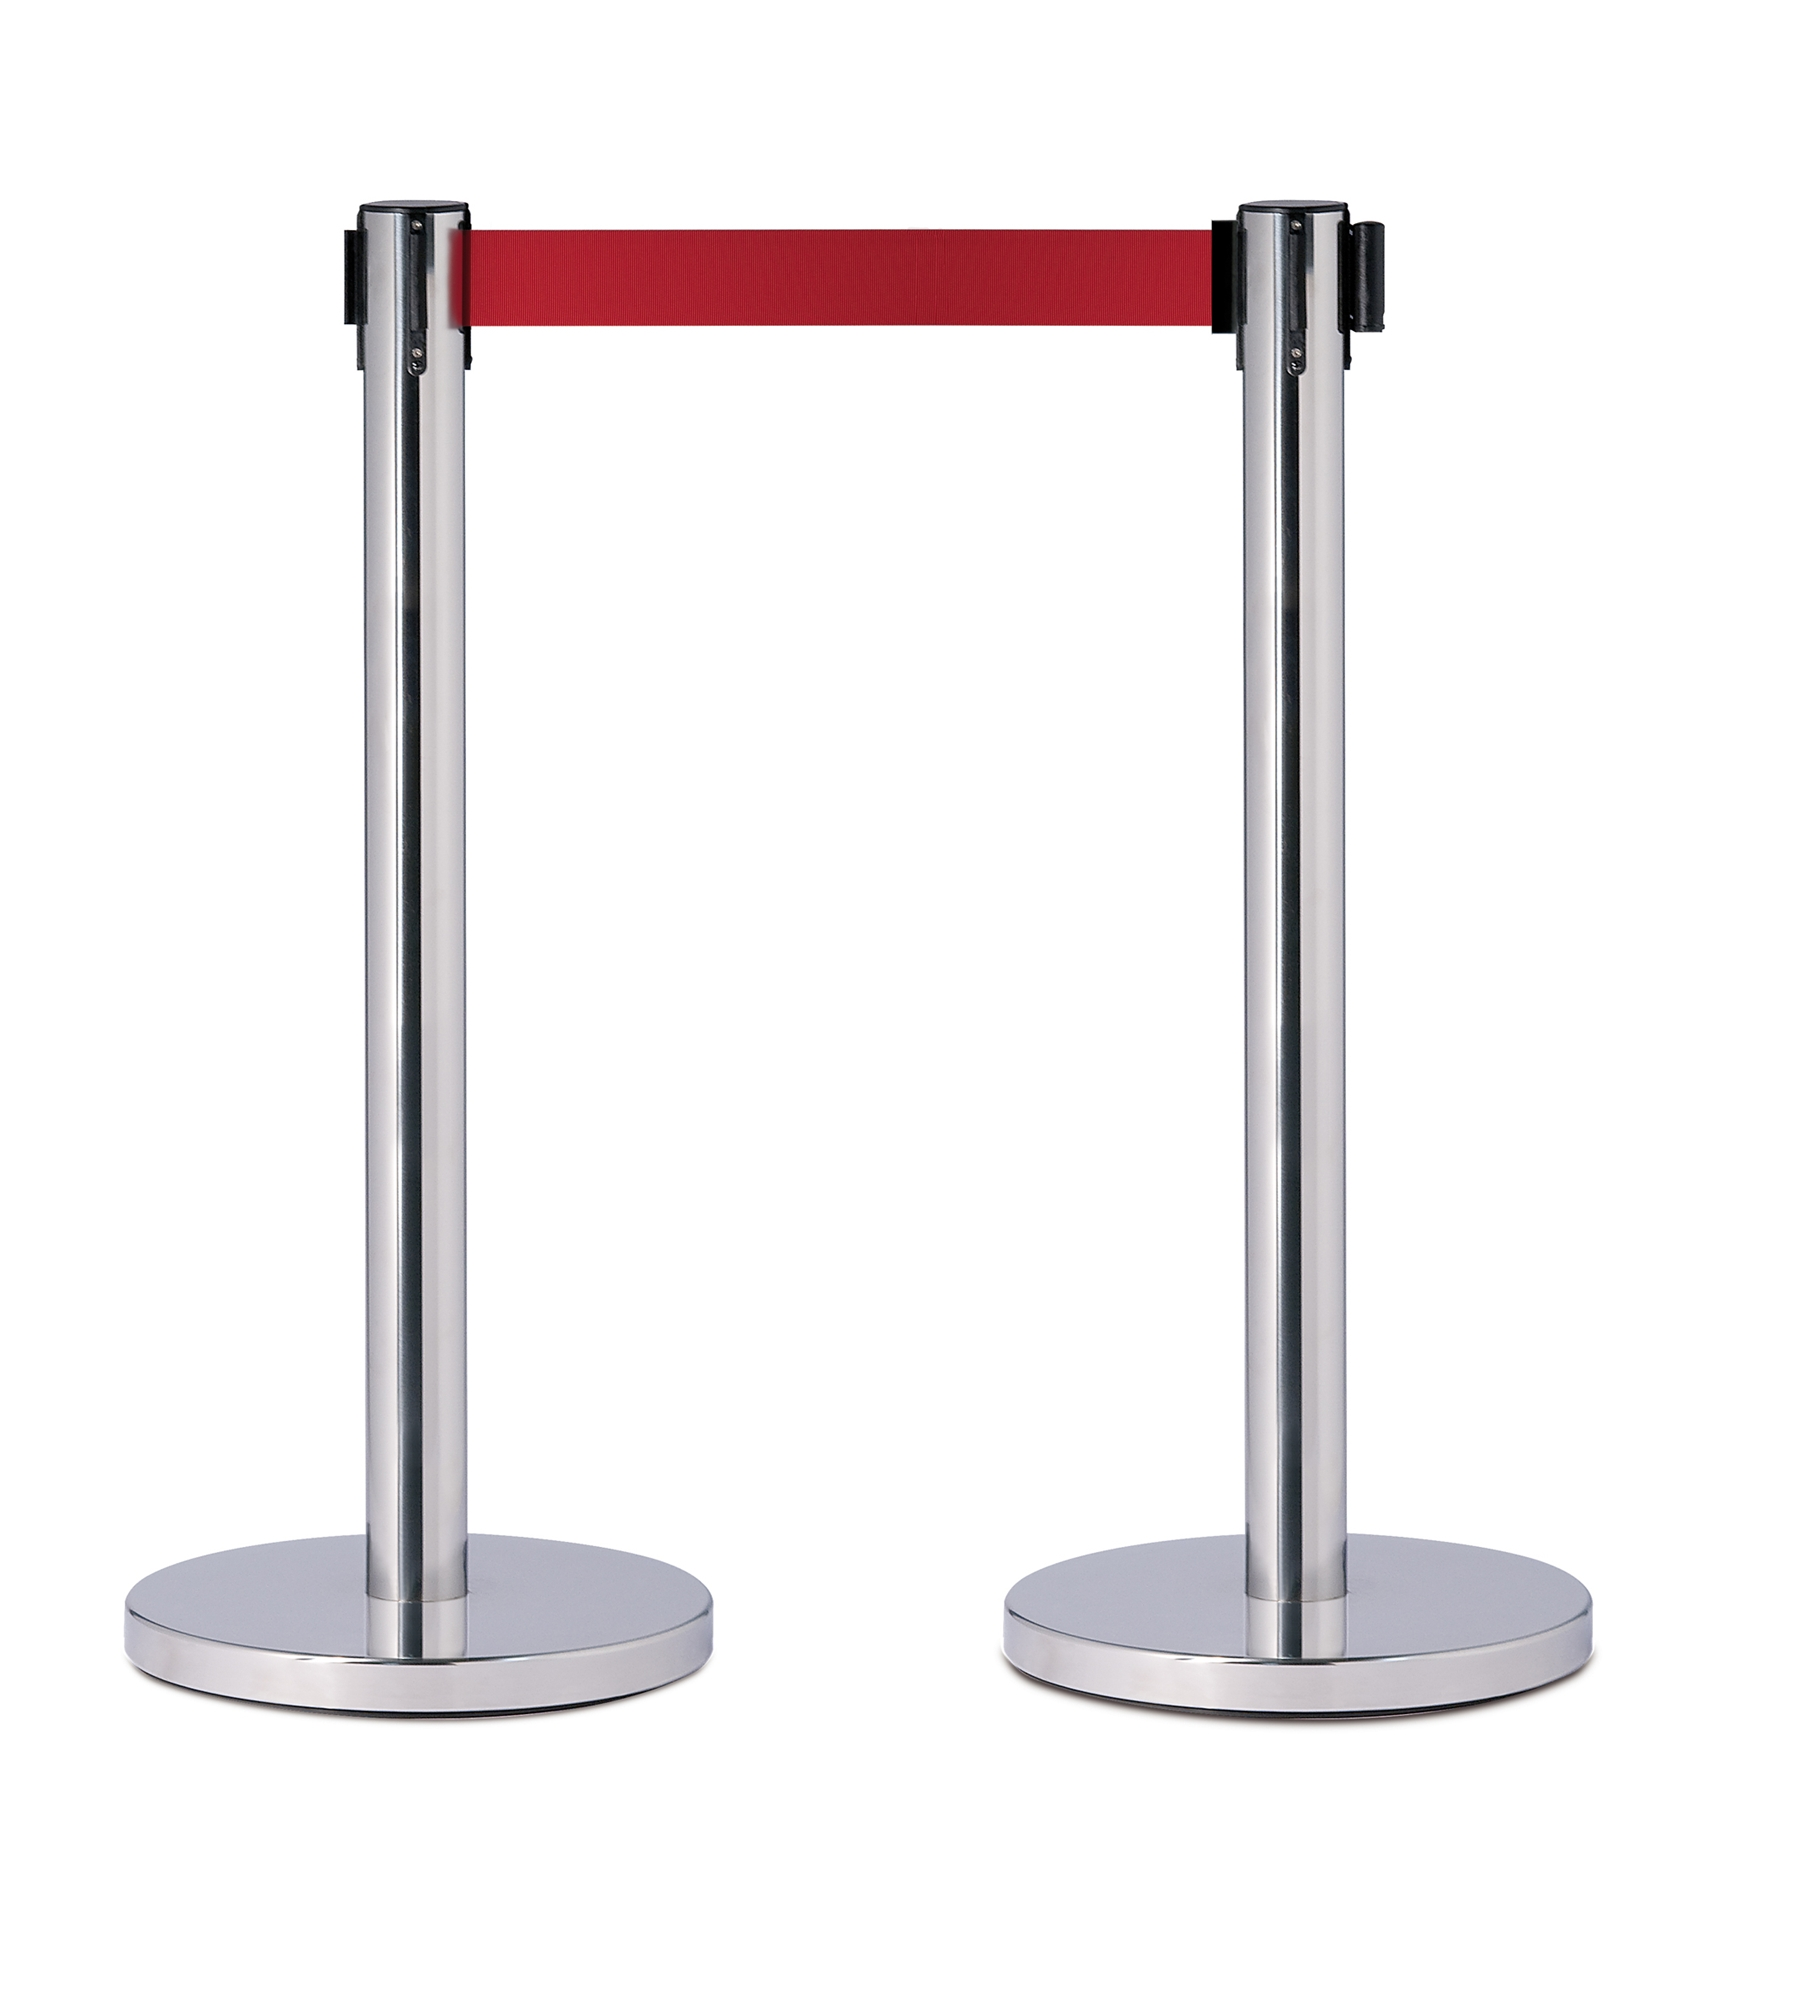 barriere extensible colonne inox ruban rouge